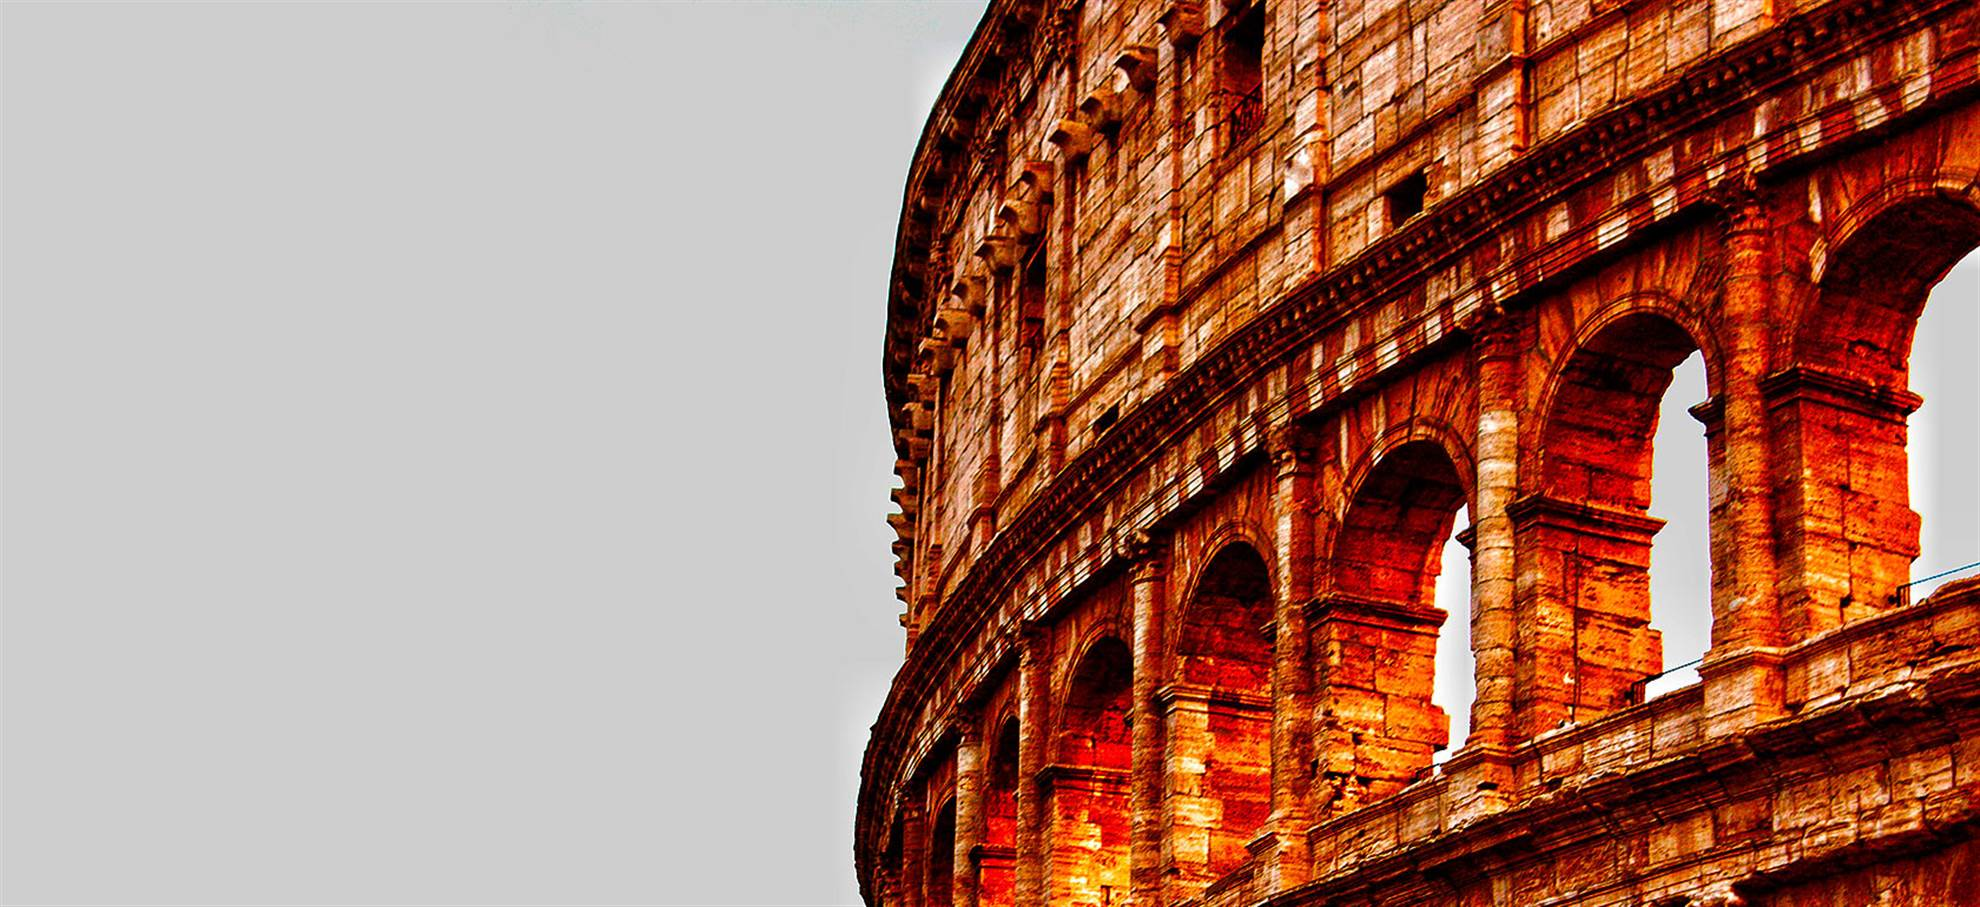 Colosseum underground Tour & Ancient Rome